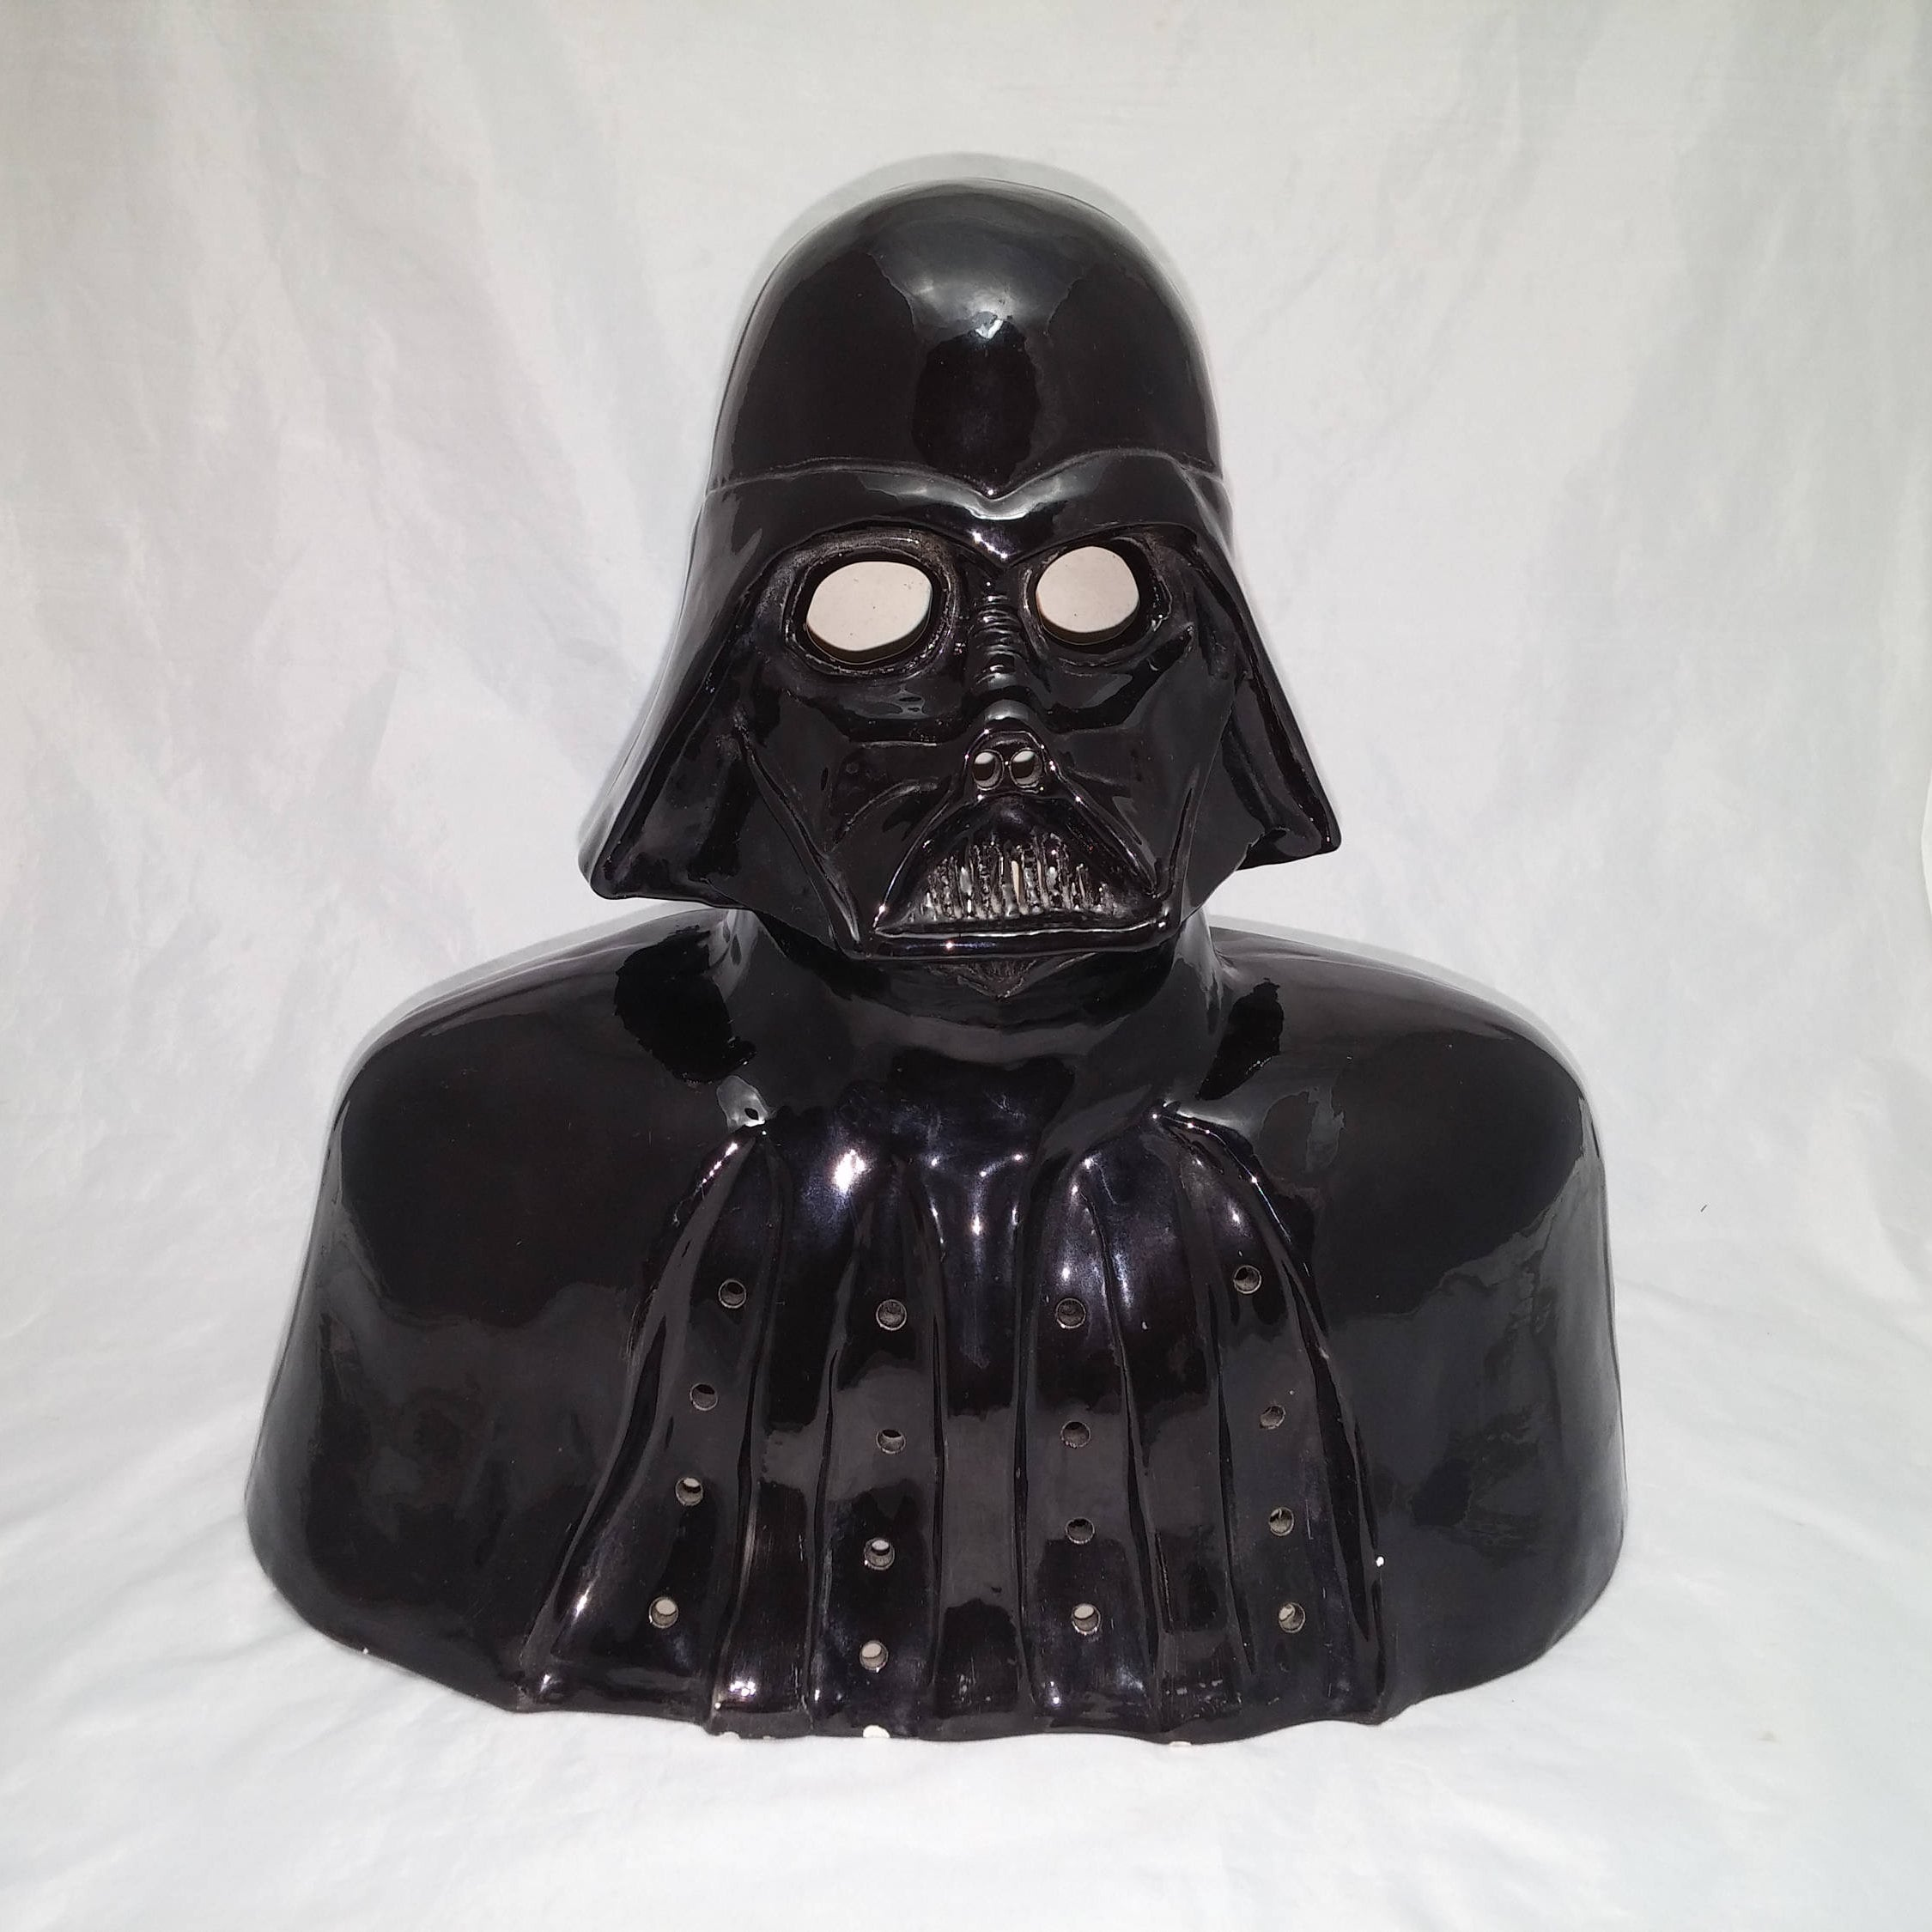 1970s Darth Vader Lamp - Kiln Fired Glazed Pottery Bust, Previously ...